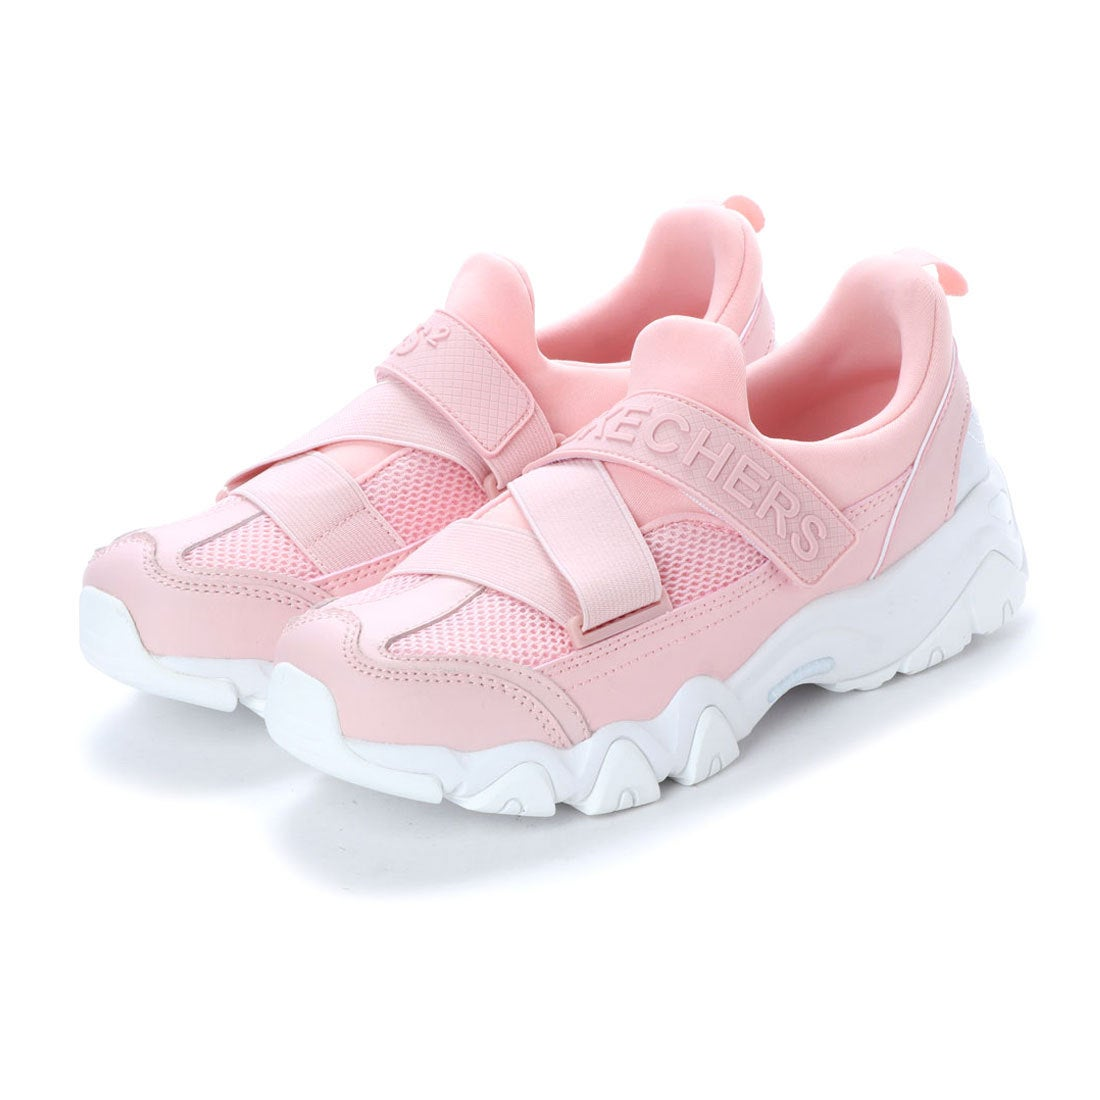 4a9460e5132f8 スケッチャーズ SKECHERS DLITES 2.0 - BEST BET(ディライト2.0ベスト ...